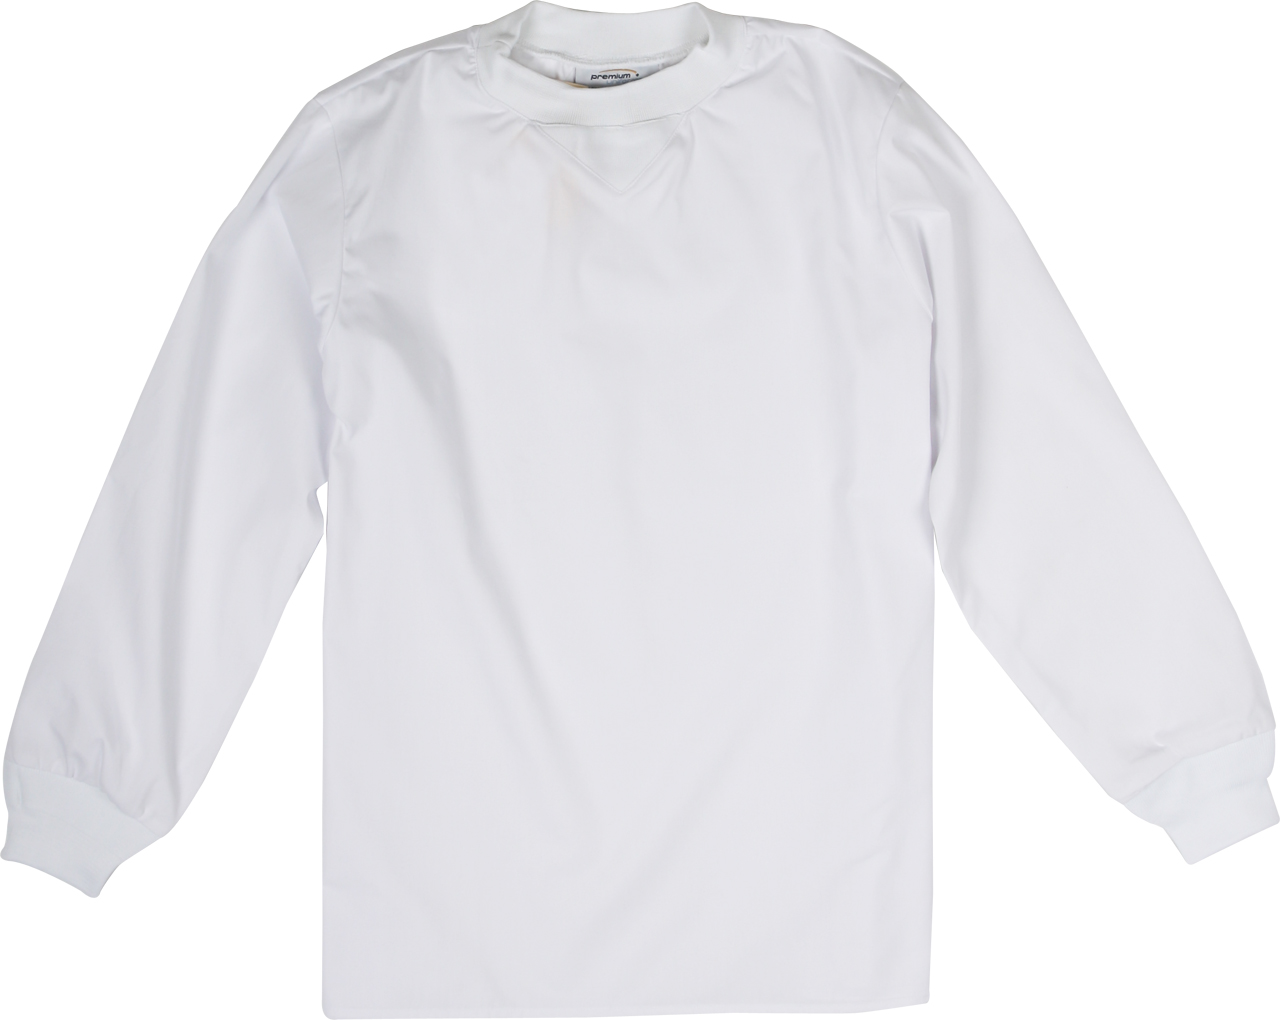 Picture of Premium Uniforms Poly/Cotton Food Industry Shirt